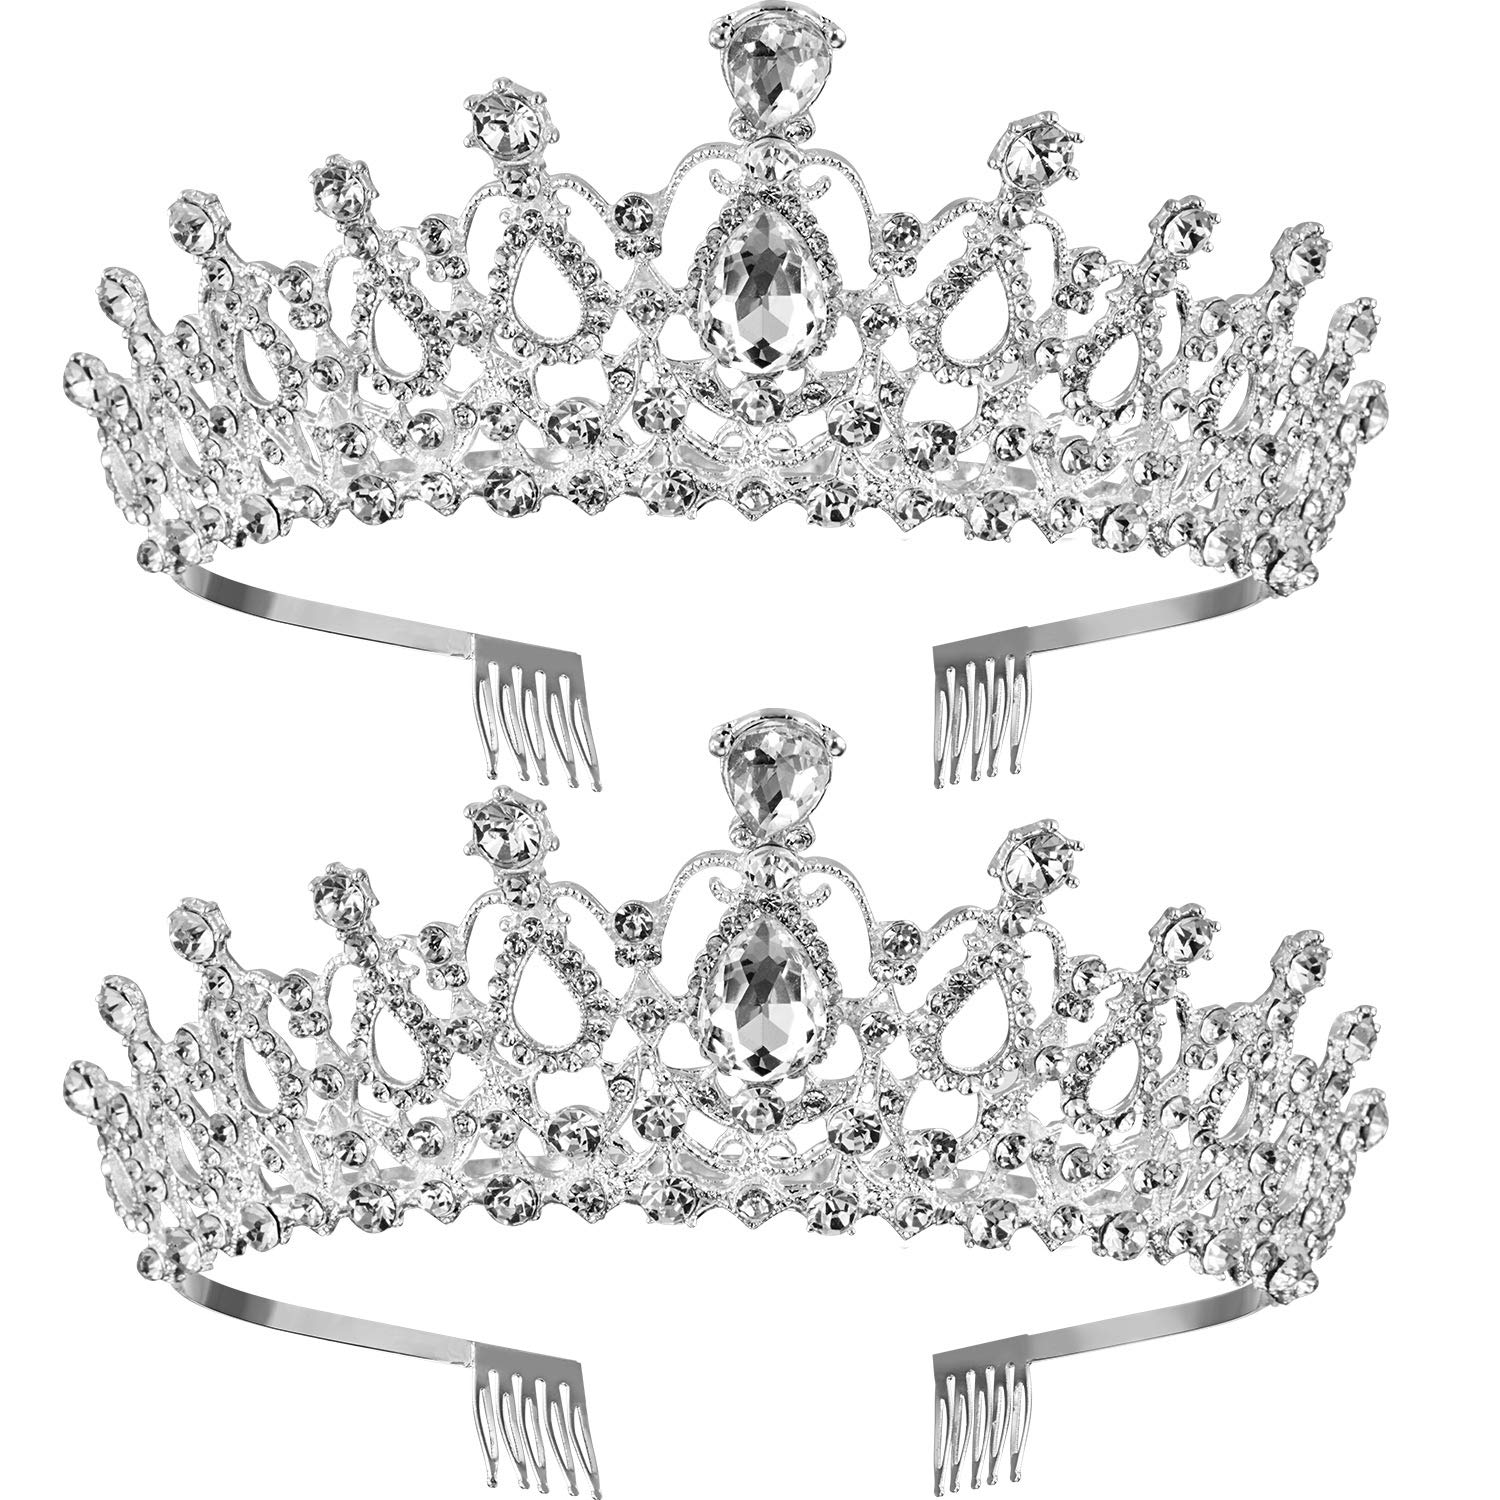 TecUnite 2 Pack Wedding Crown, Crystal Rhinestones Crown Princess Crown with Comb Exquisite Headband